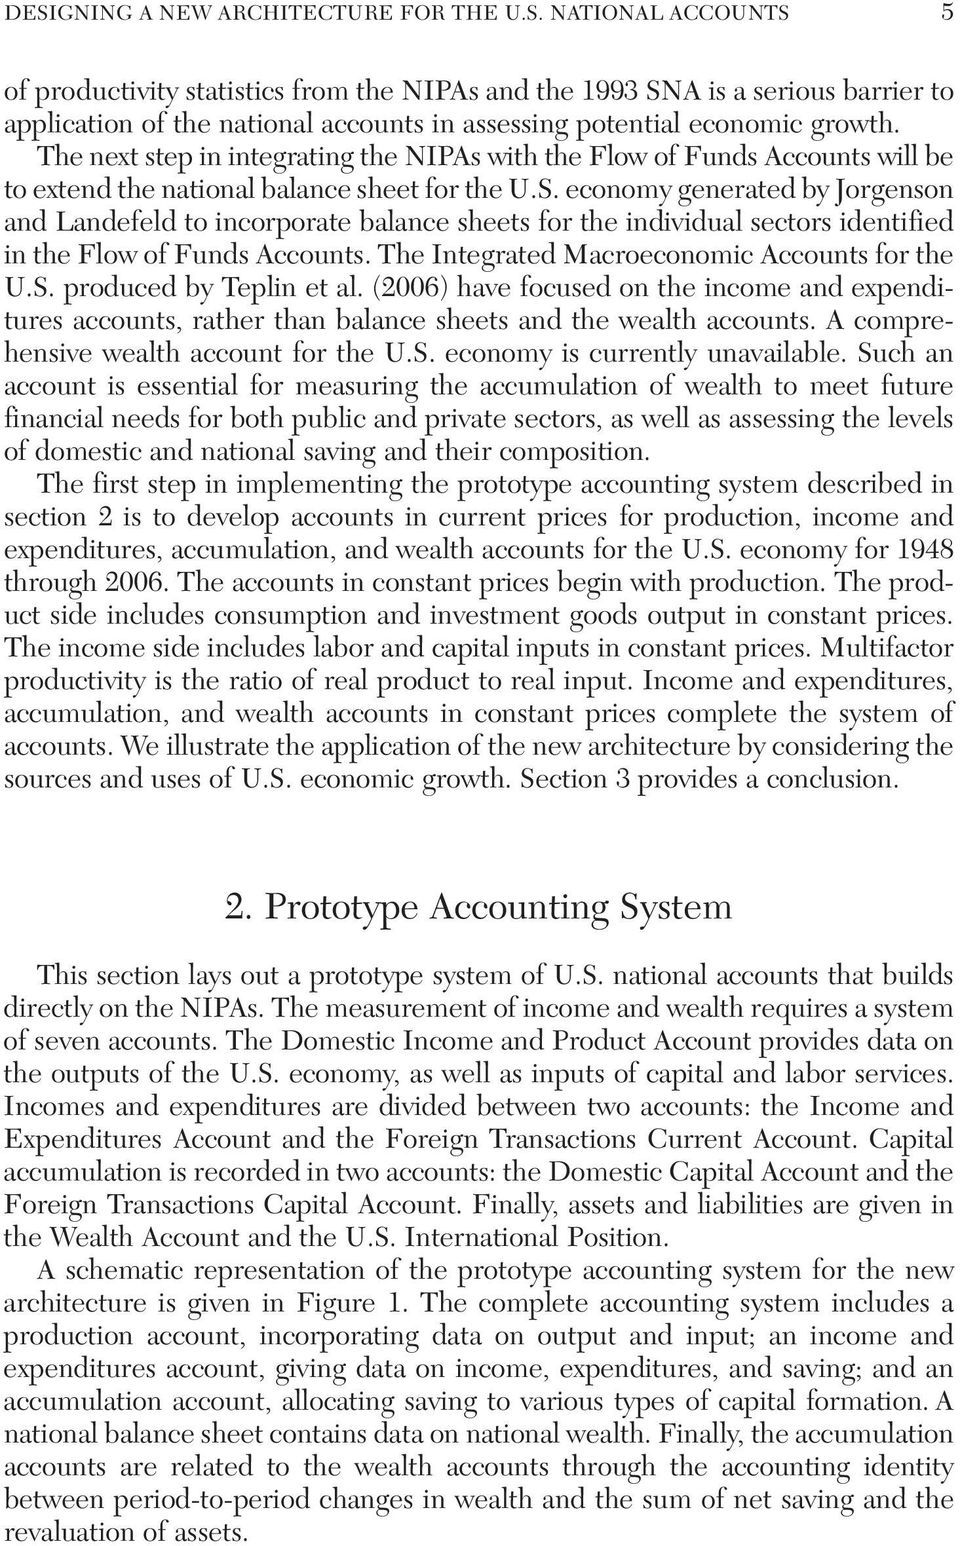 economy generated by Jorgenson and Landefeld to incorporate balance sheets for the individual sectors identified in the Flow of Funds Accounts. The Integrated Macroeconomic Accounts for the U.S.